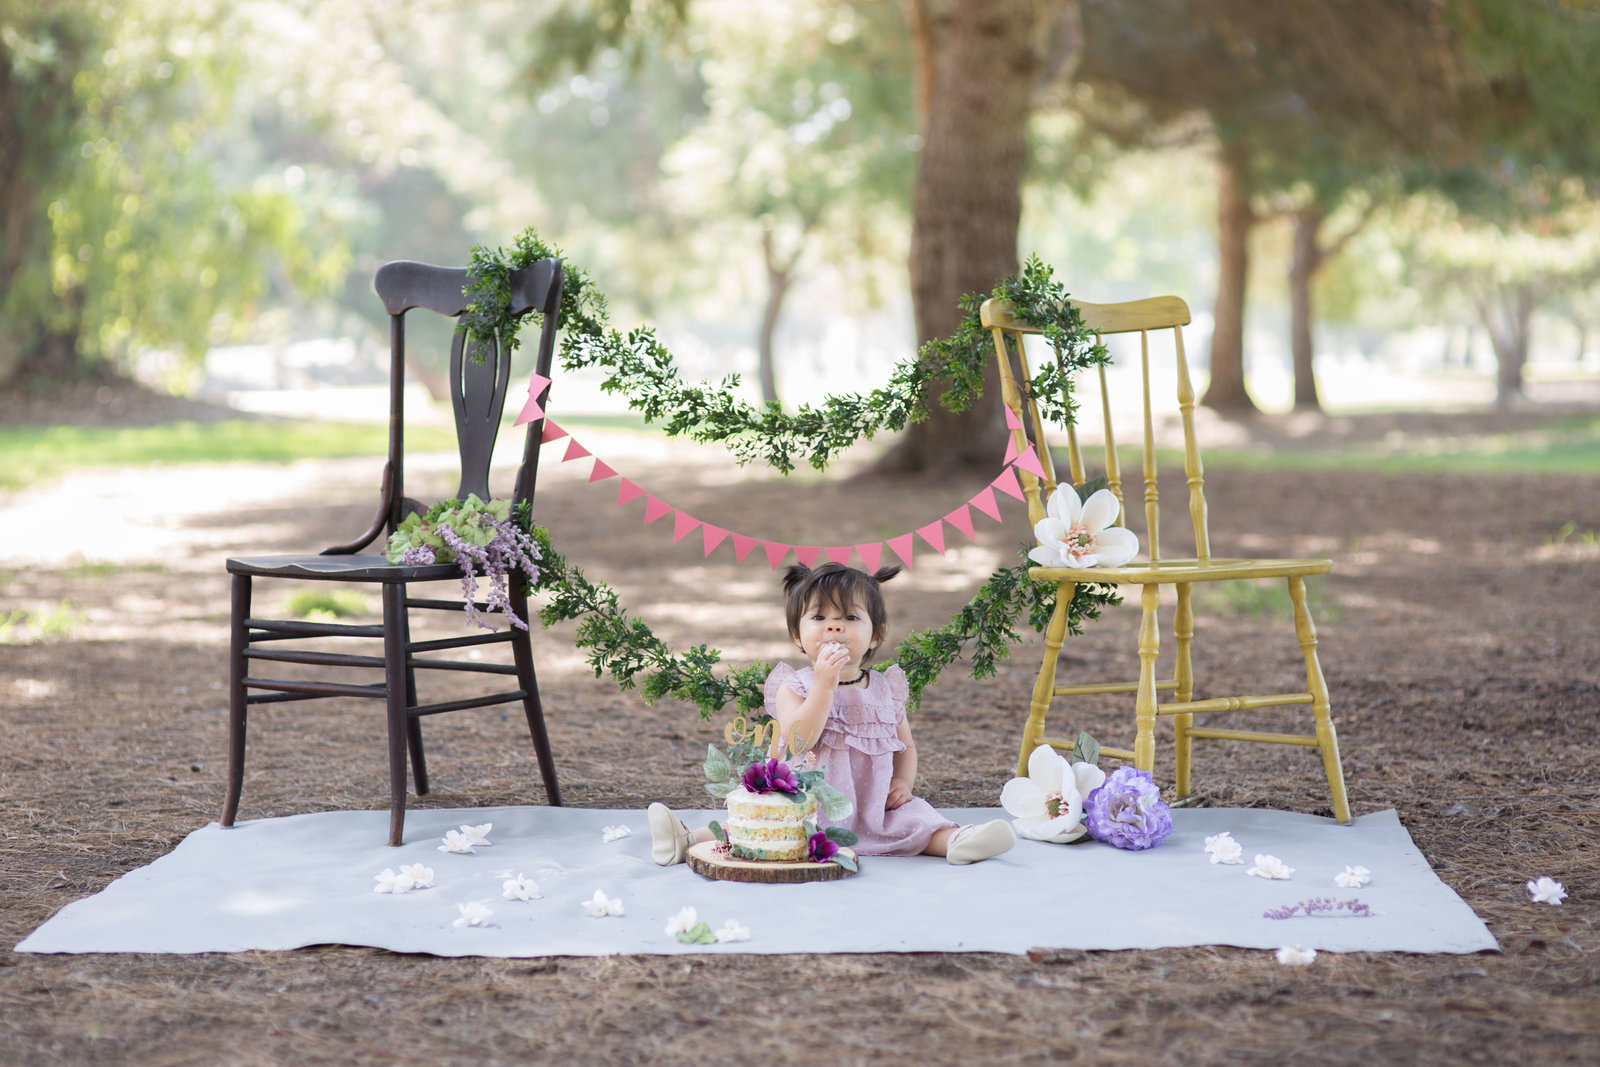 Long-Beach-regional-park-cake-smash-photos-by-kelly-h-photo